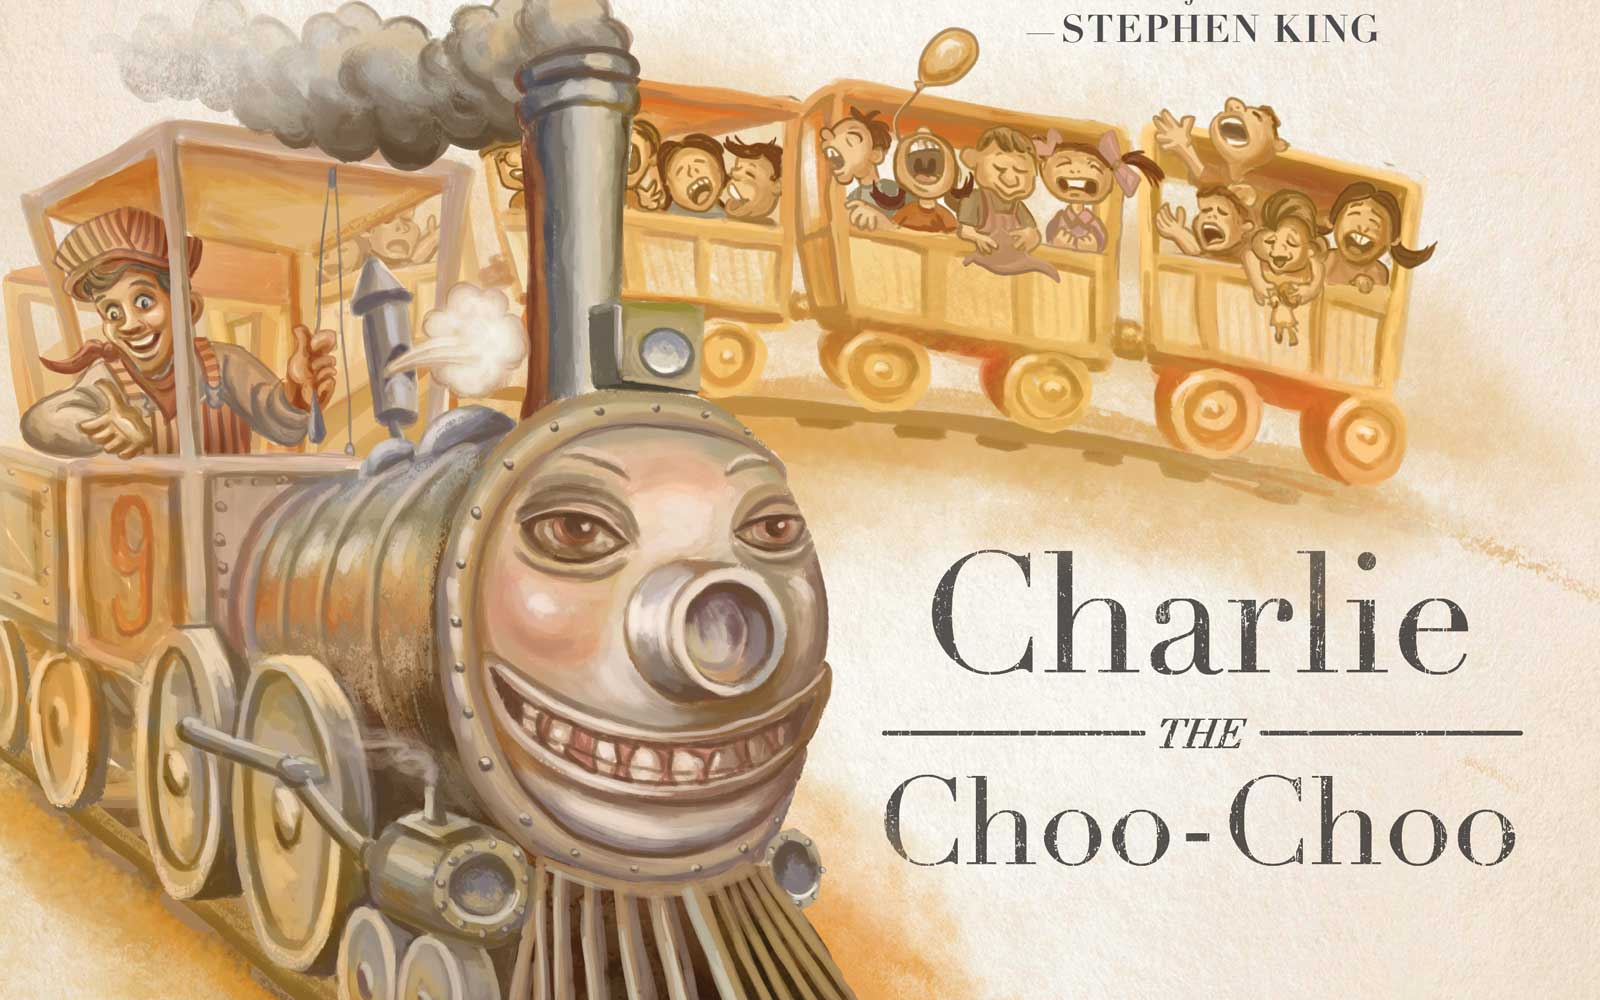 Stephen King Wrote a Children's Book